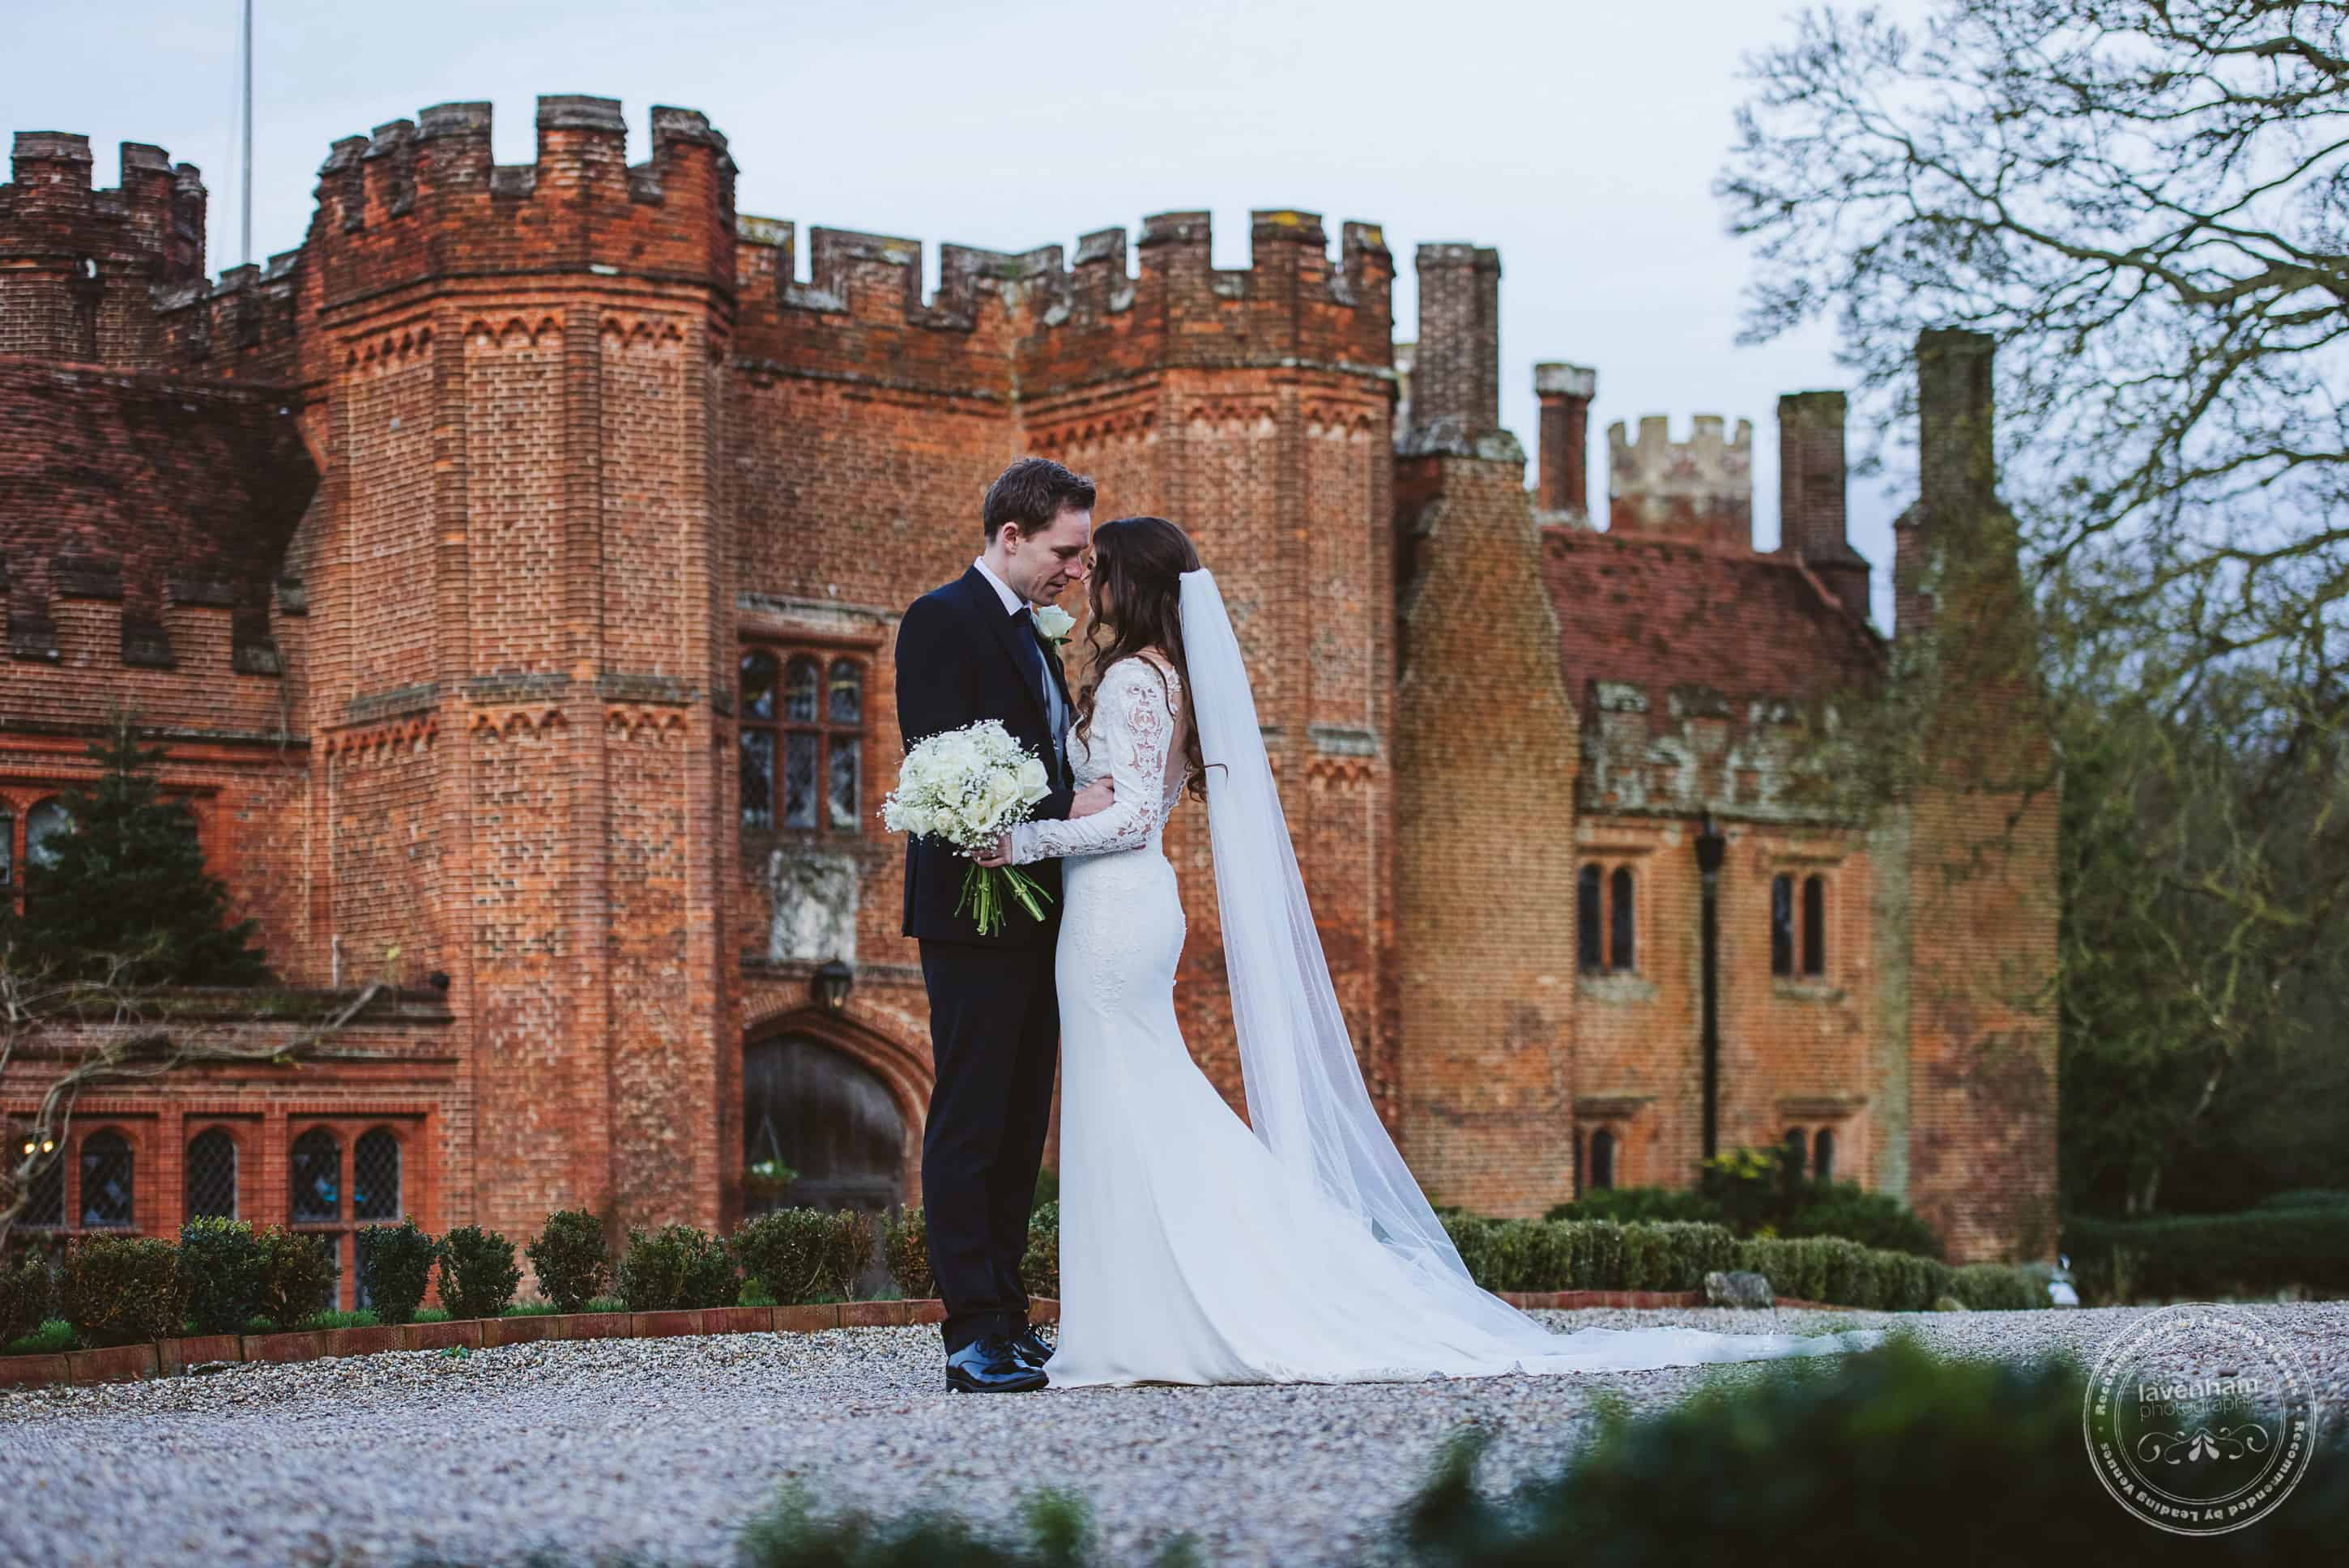 221219 Leez Priory Wedding Photoraphy 091